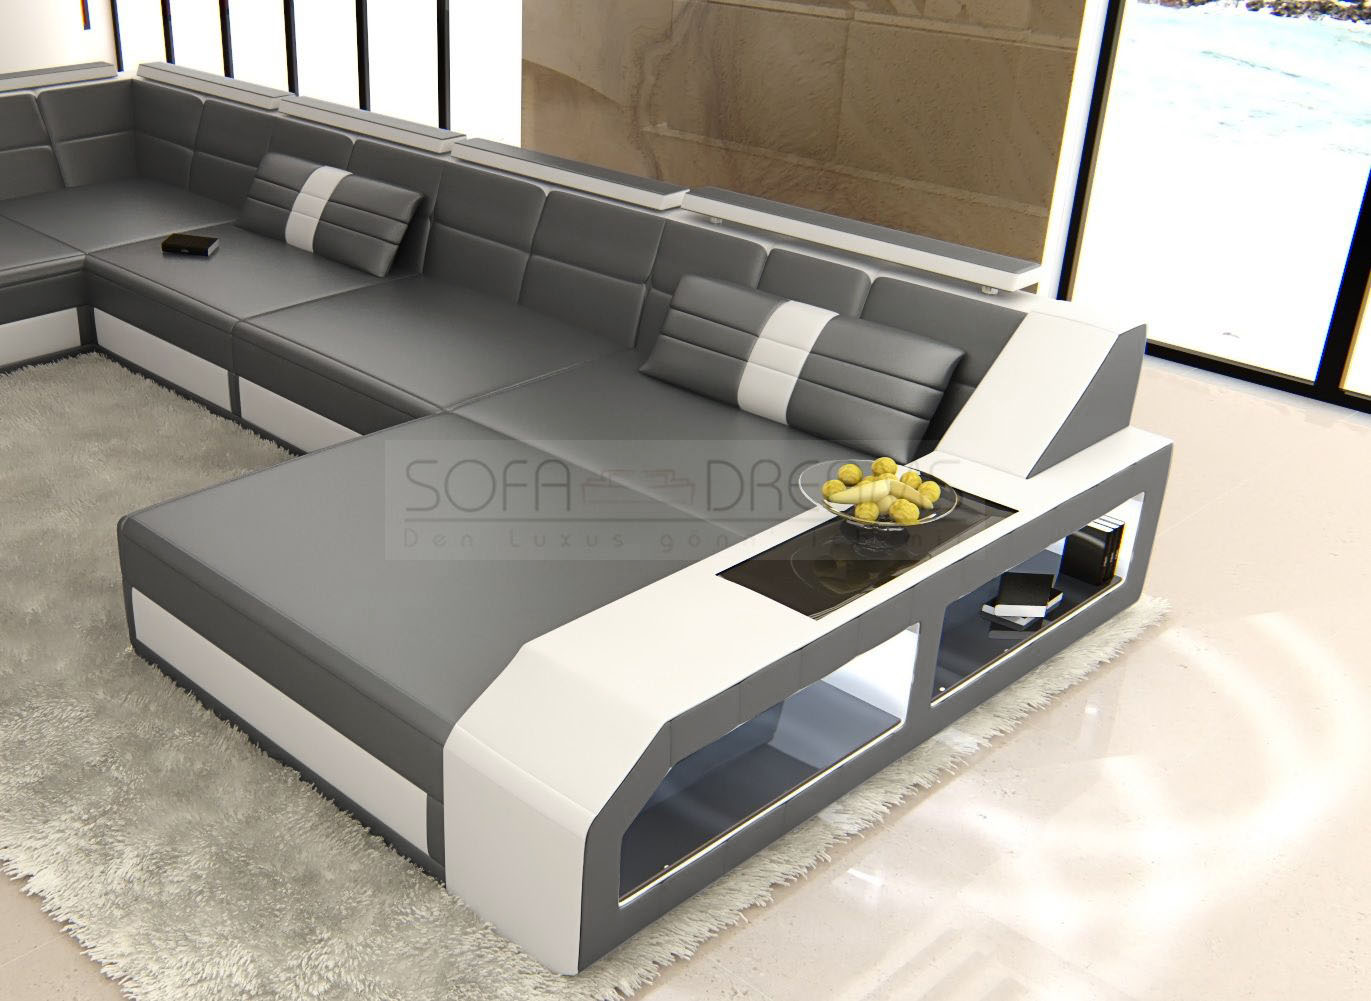 wohnlandschaft matera xxl u form ecksofa design luxus couch beleuchtung sofa 4055497021119 ebay. Black Bedroom Furniture Sets. Home Design Ideas